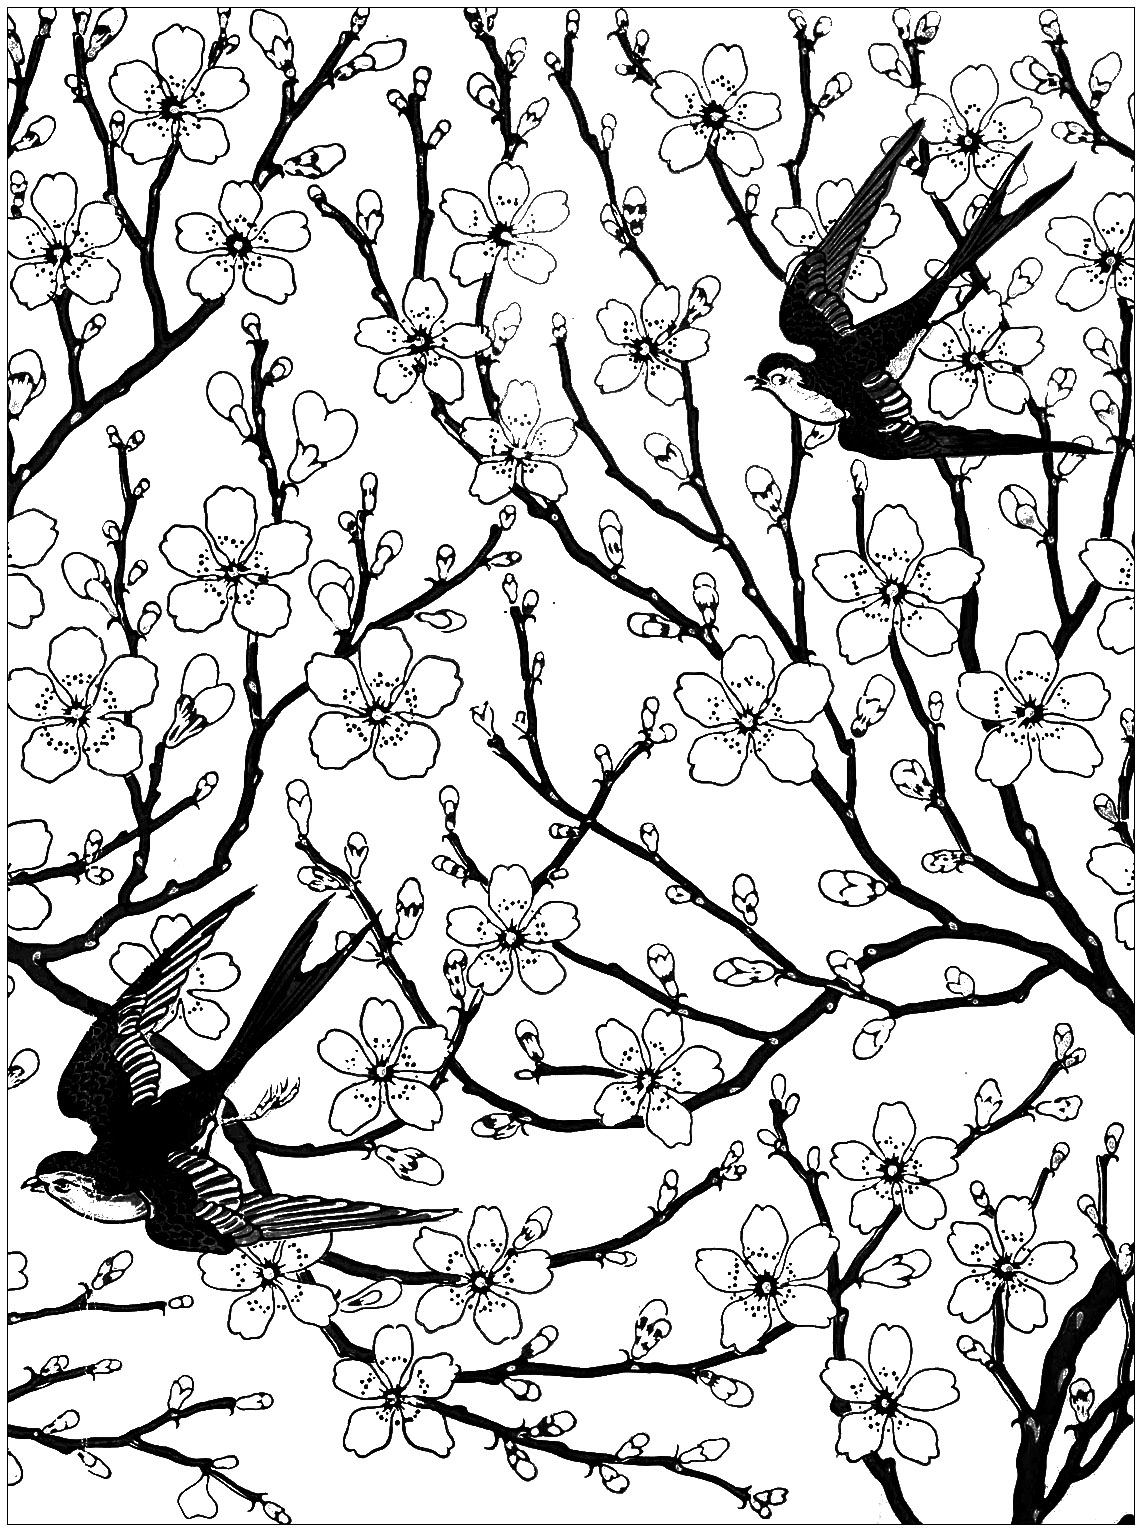 Almond blossom and swallow, coloring page inspired by a wallpaper frieze by Walter Crane (1878)